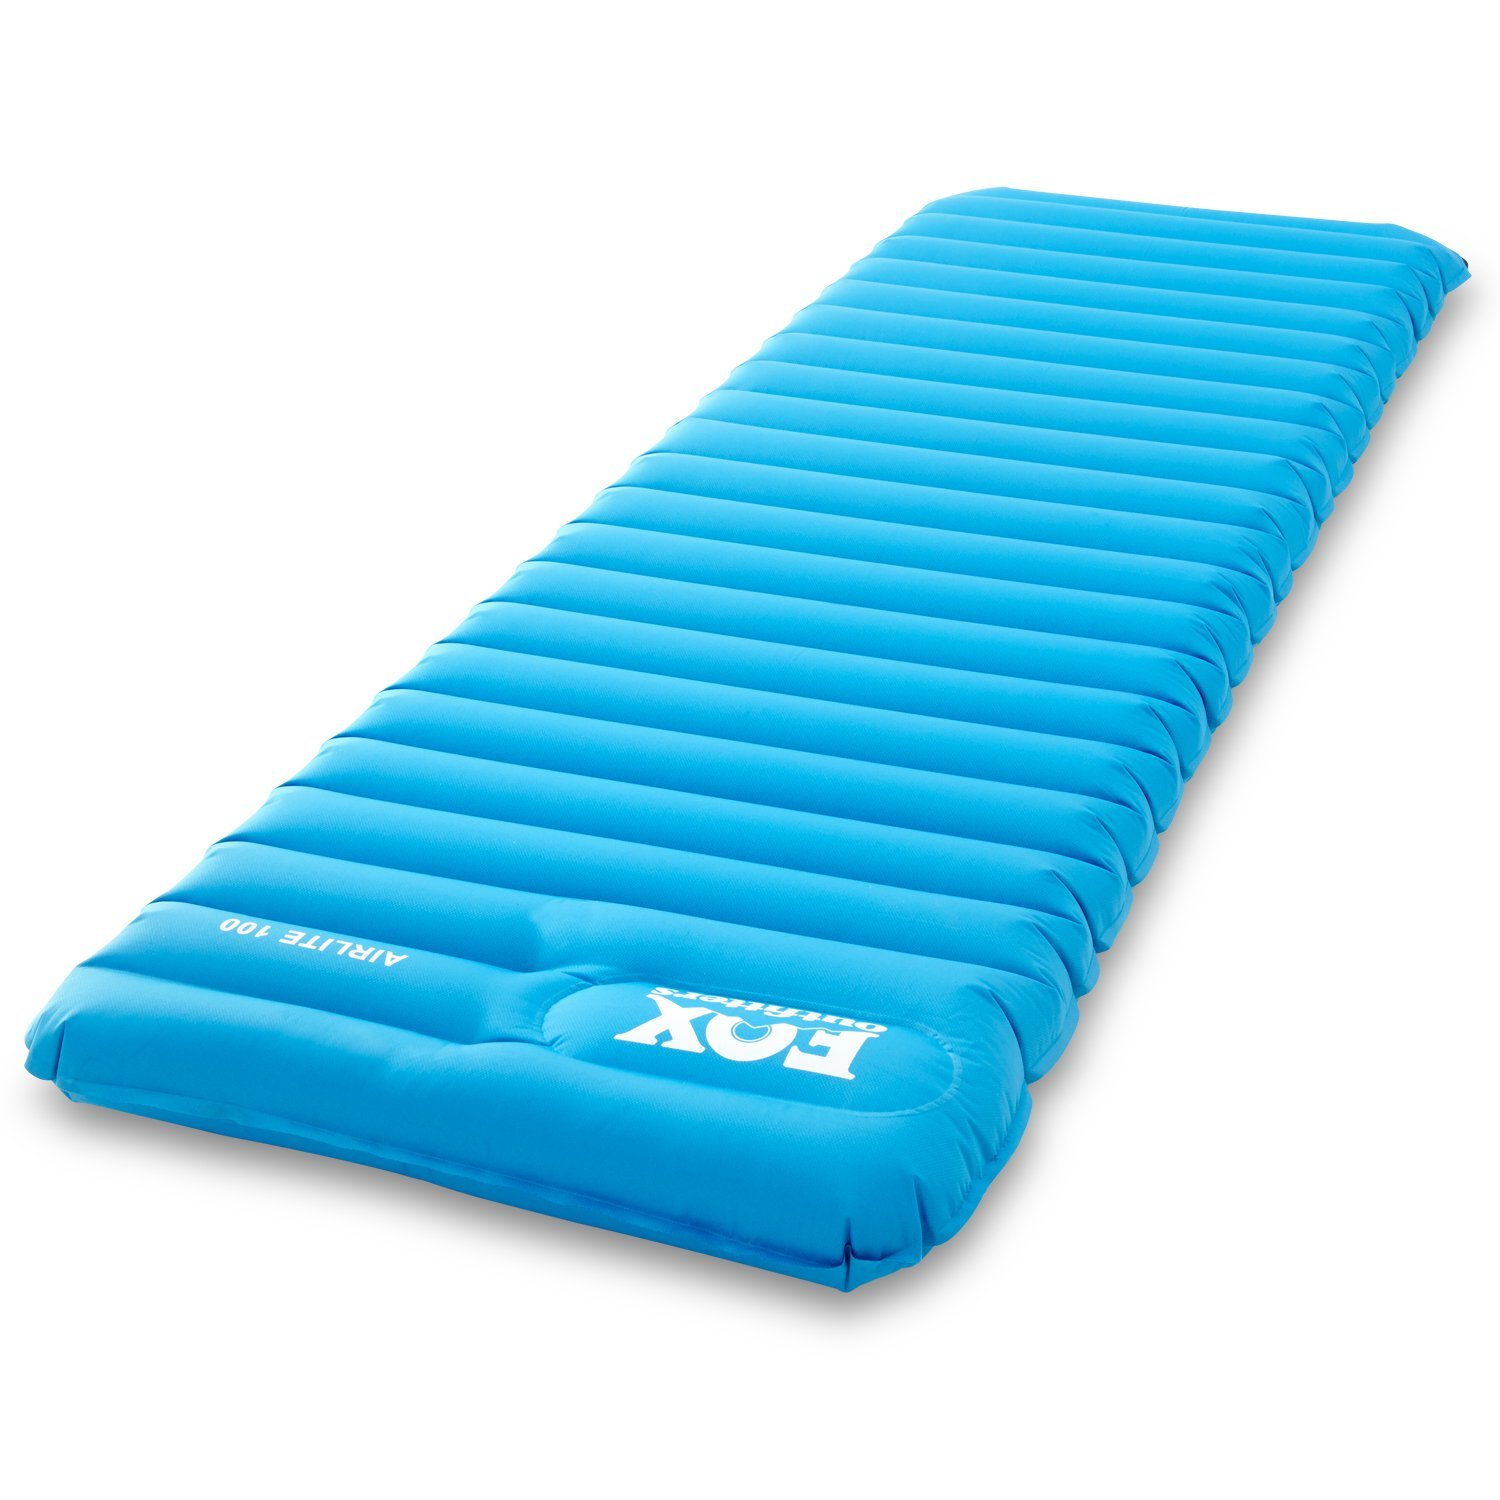 Top 5 Best Backpacking Sleeping Pad Reviews A Sleep Man